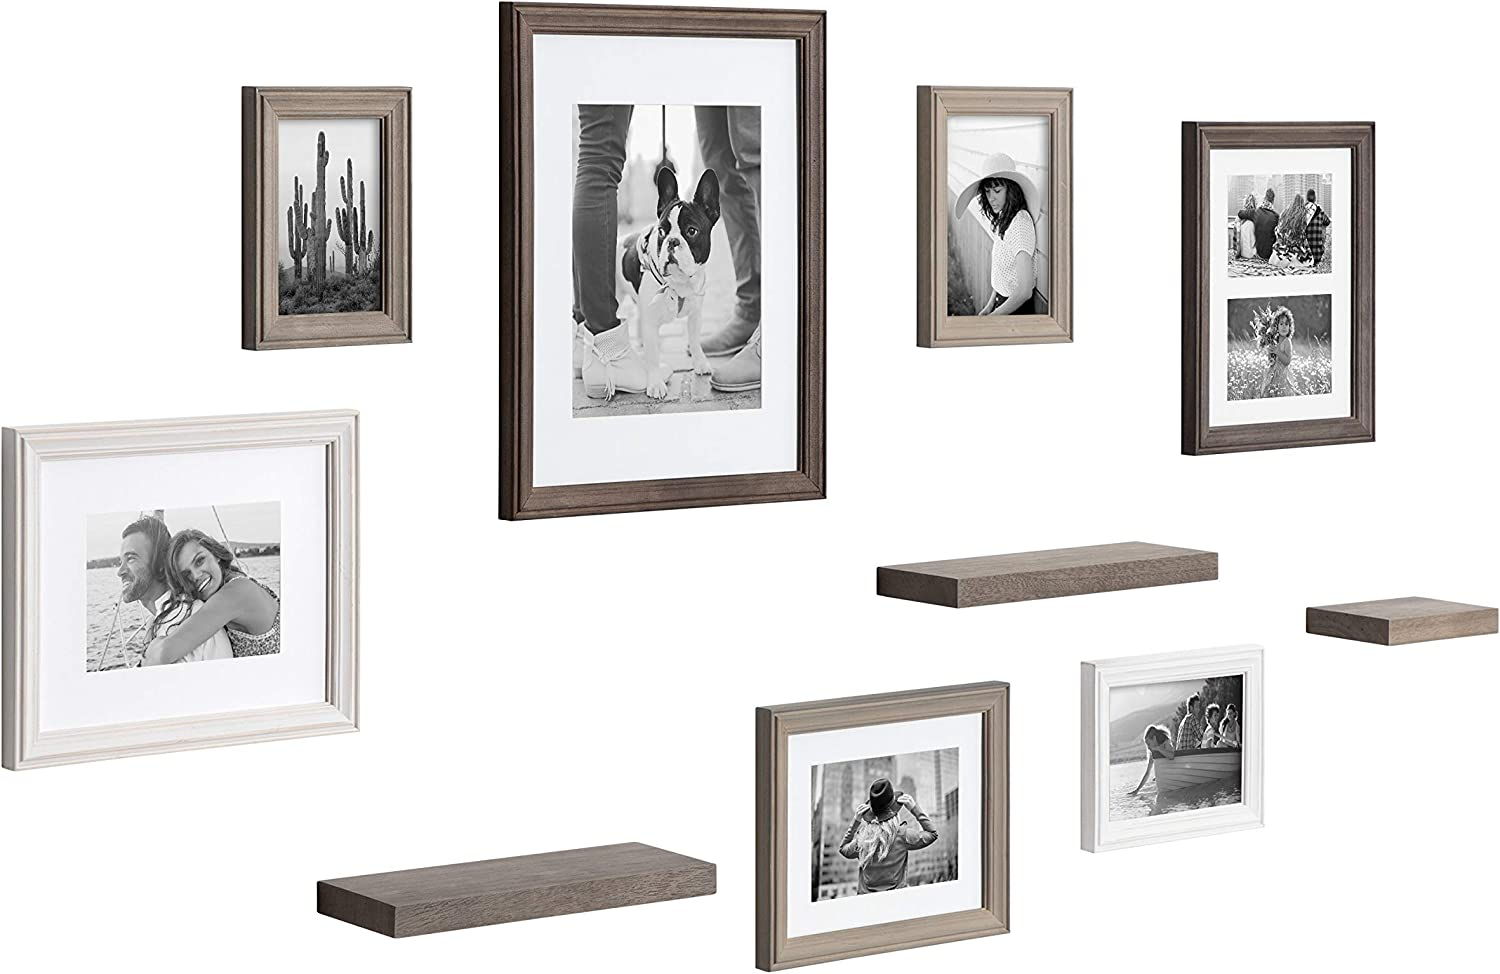 Kate and Laurel Bordeaux Gallery Wall Frame and Shelf Kit, Set of 10, Multicolored with Whitewash, Charcoal Gray, and Farmhouse Gray, Assorted Size Frames and Three Display Shelves